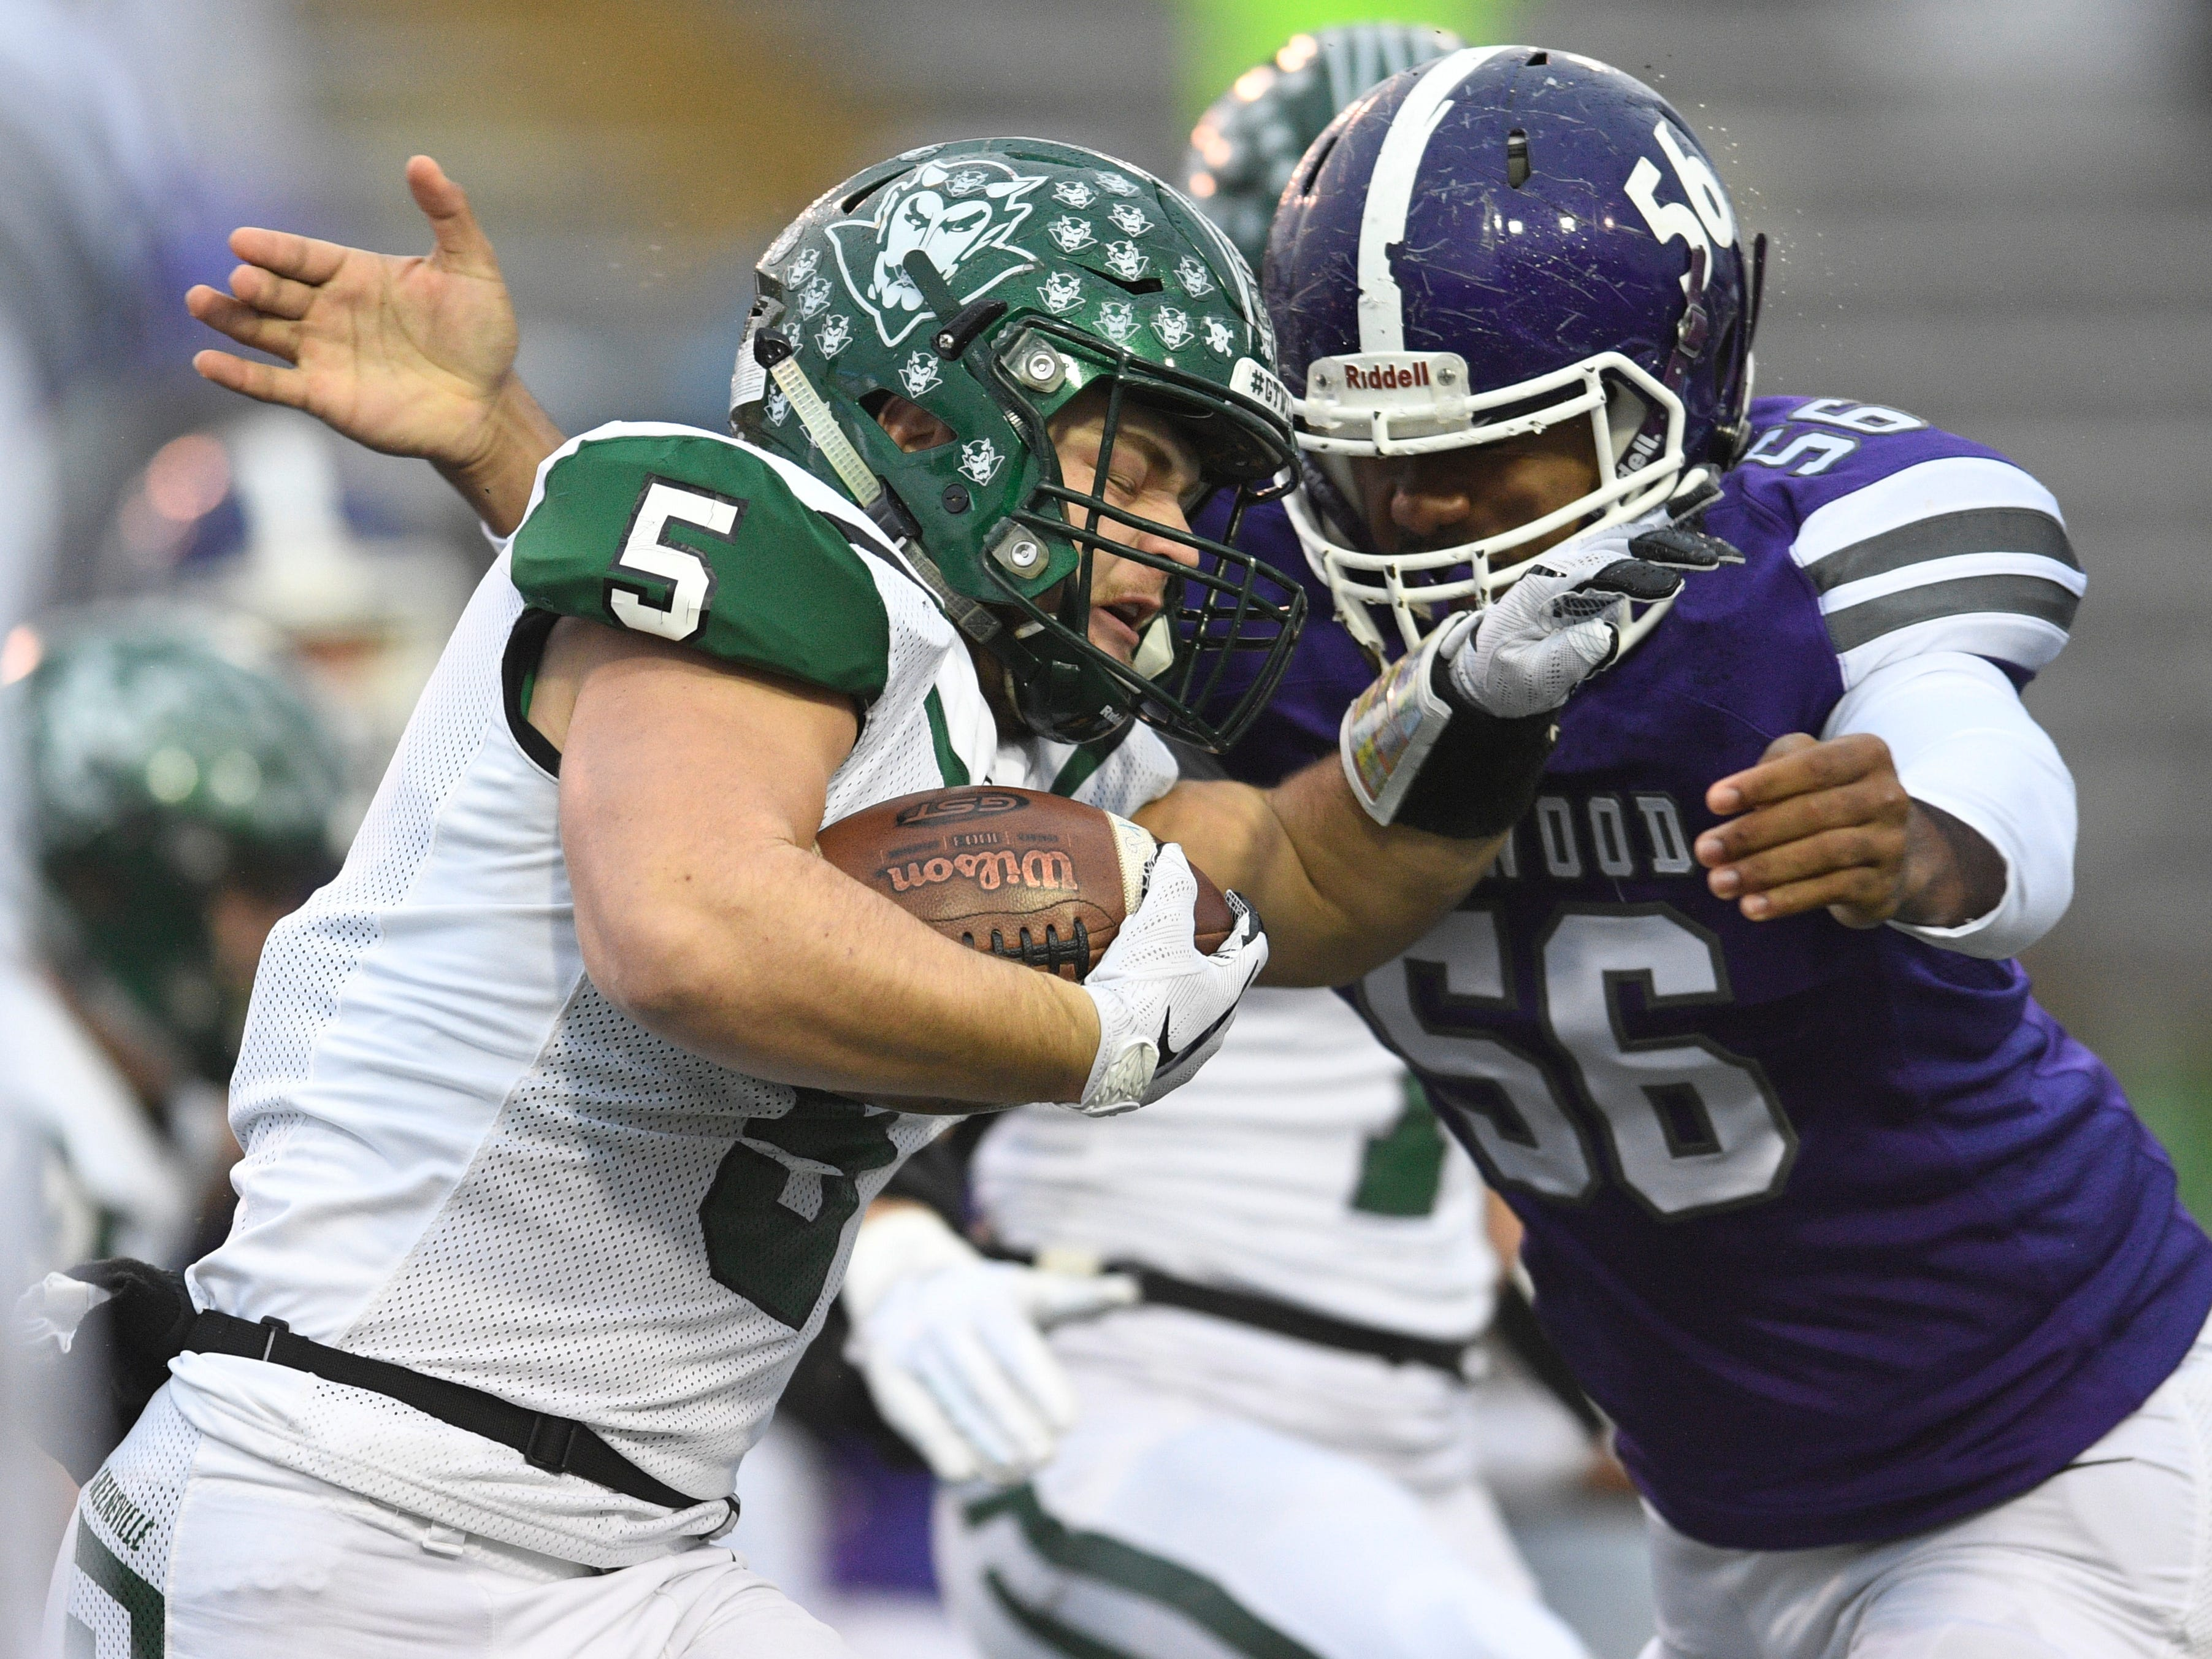 Haywood's  Iverson Hines (56) closes in on Greeneville's Garrin Shuffler (5) in the first quarter during the Class 4A BlueCross Bowl state championship at Tennessee Tech's Tucker Stadium in Cookeville, Tenn., on Thursday, Nov. 29, 2018.